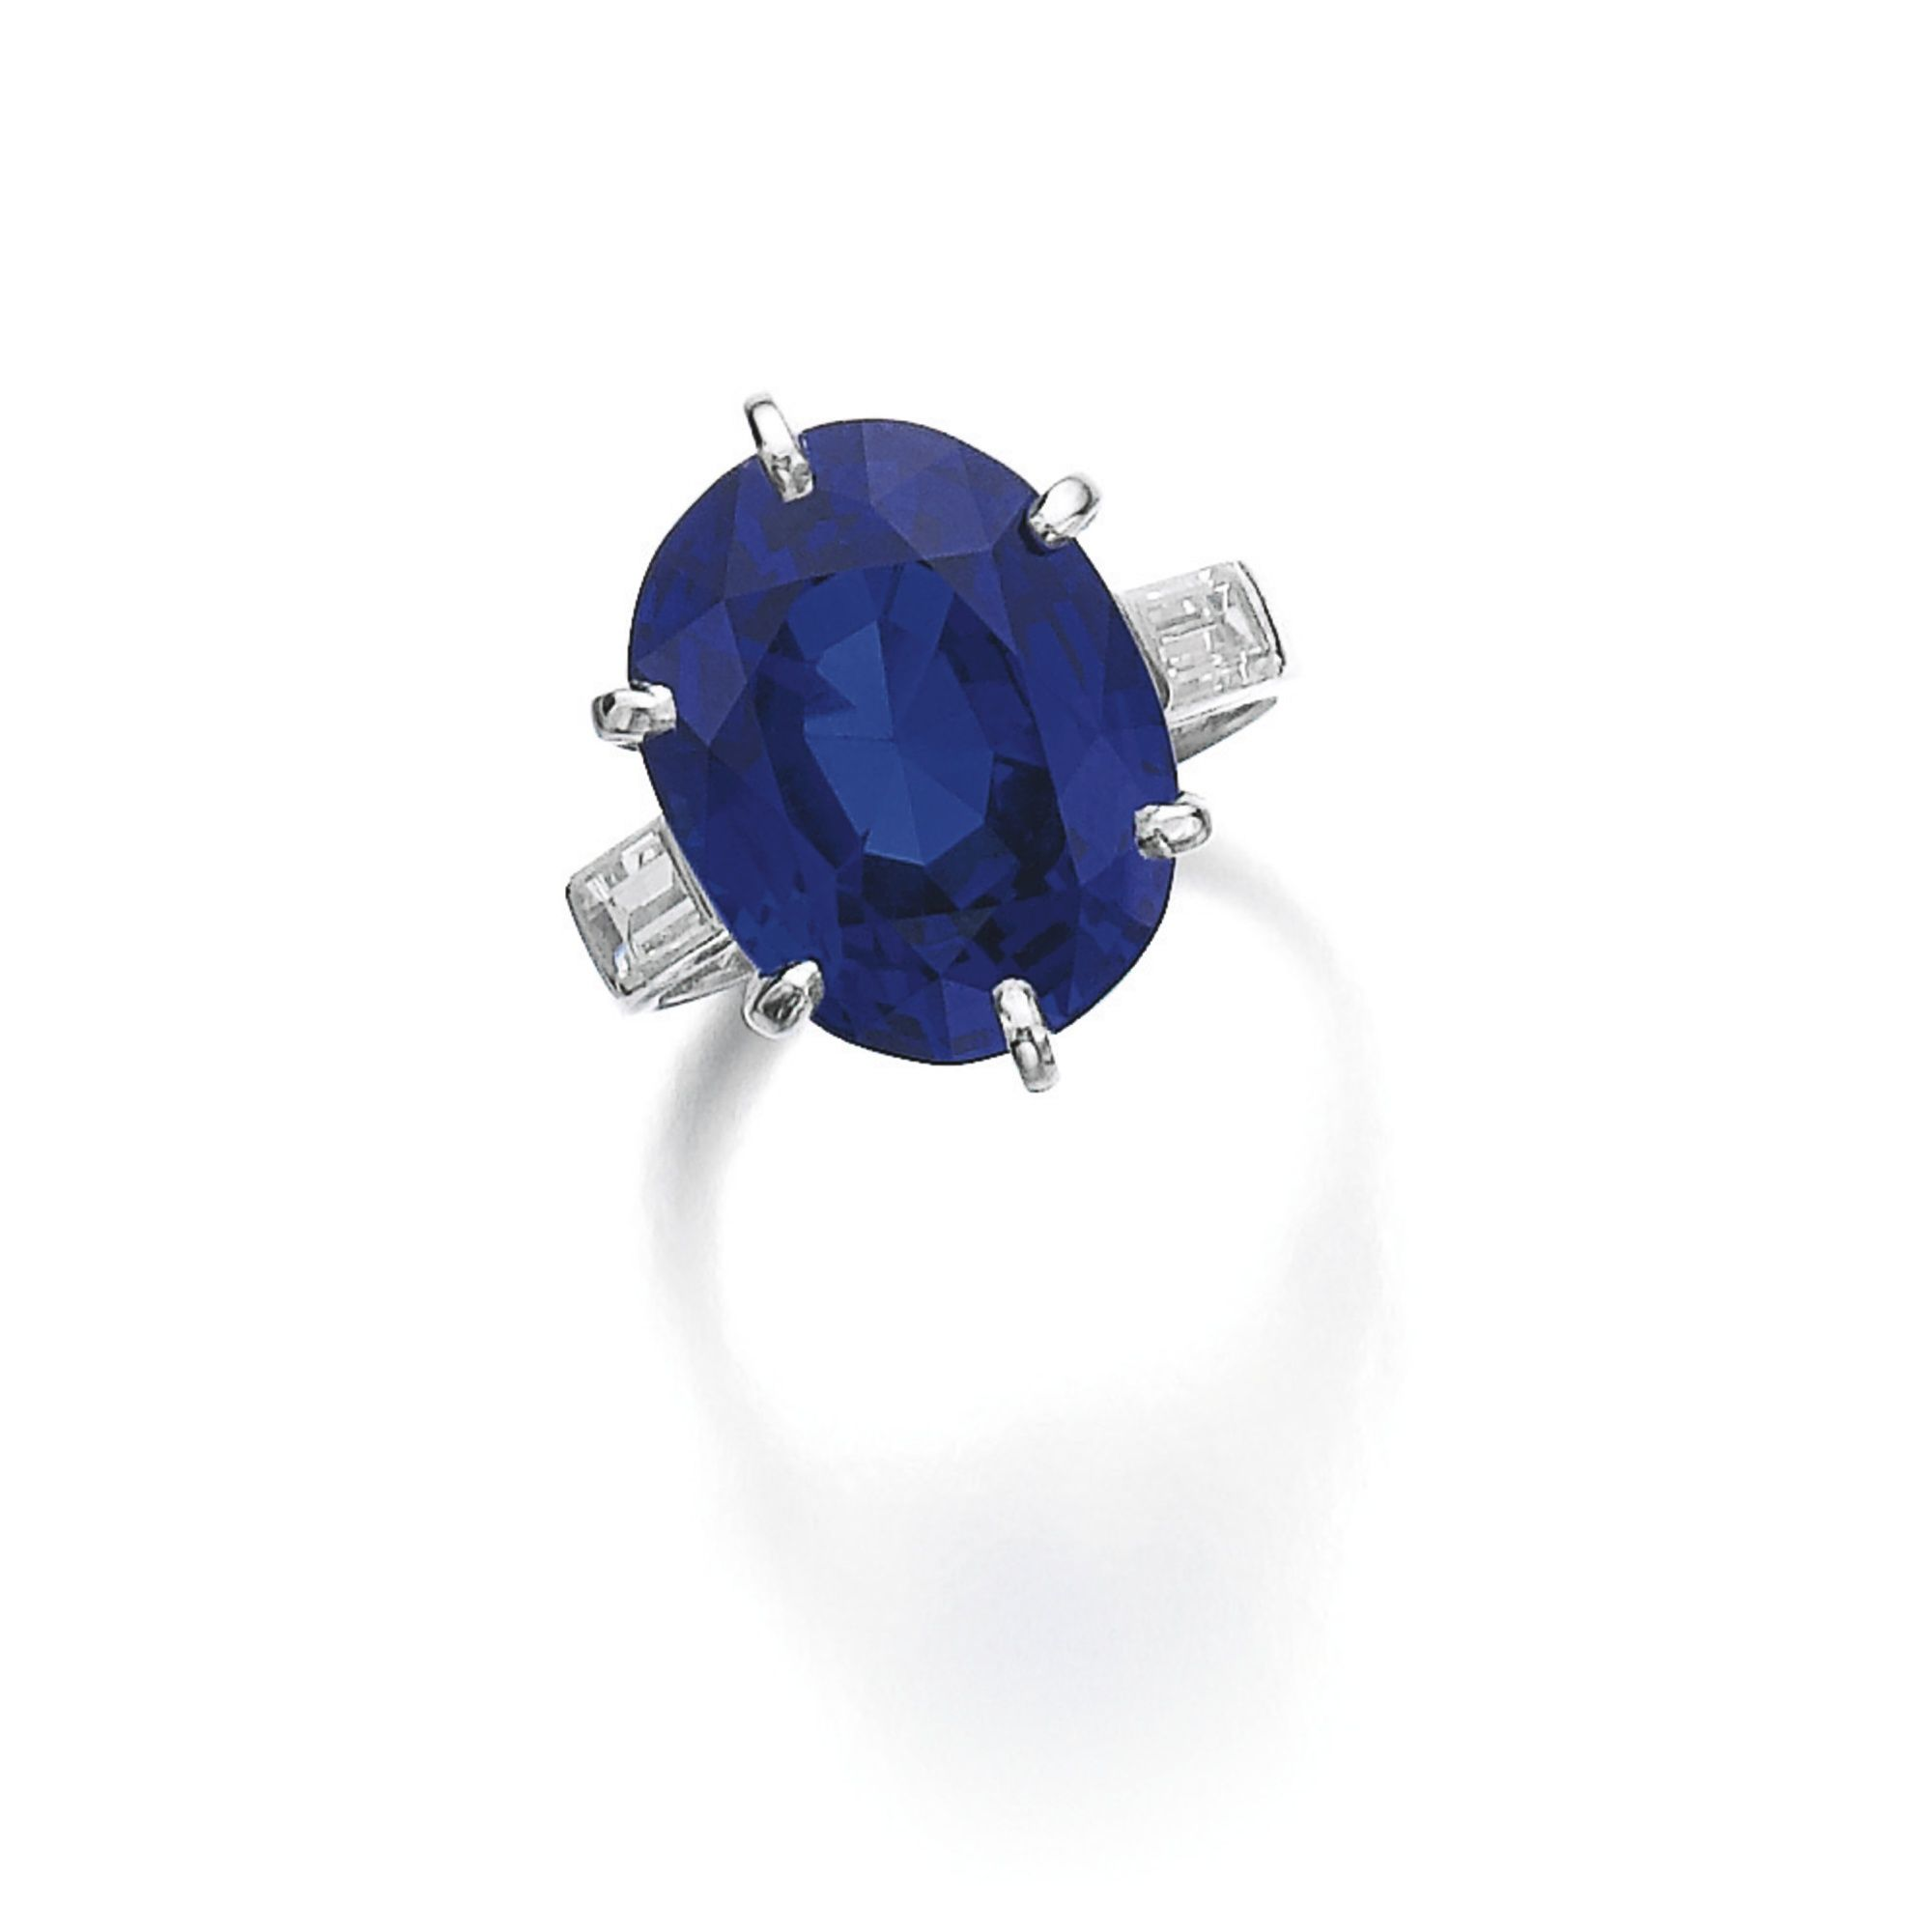 gold jewelry and atrium baguette wales in sapphire halo lyst fullscreen view ring polly diamond